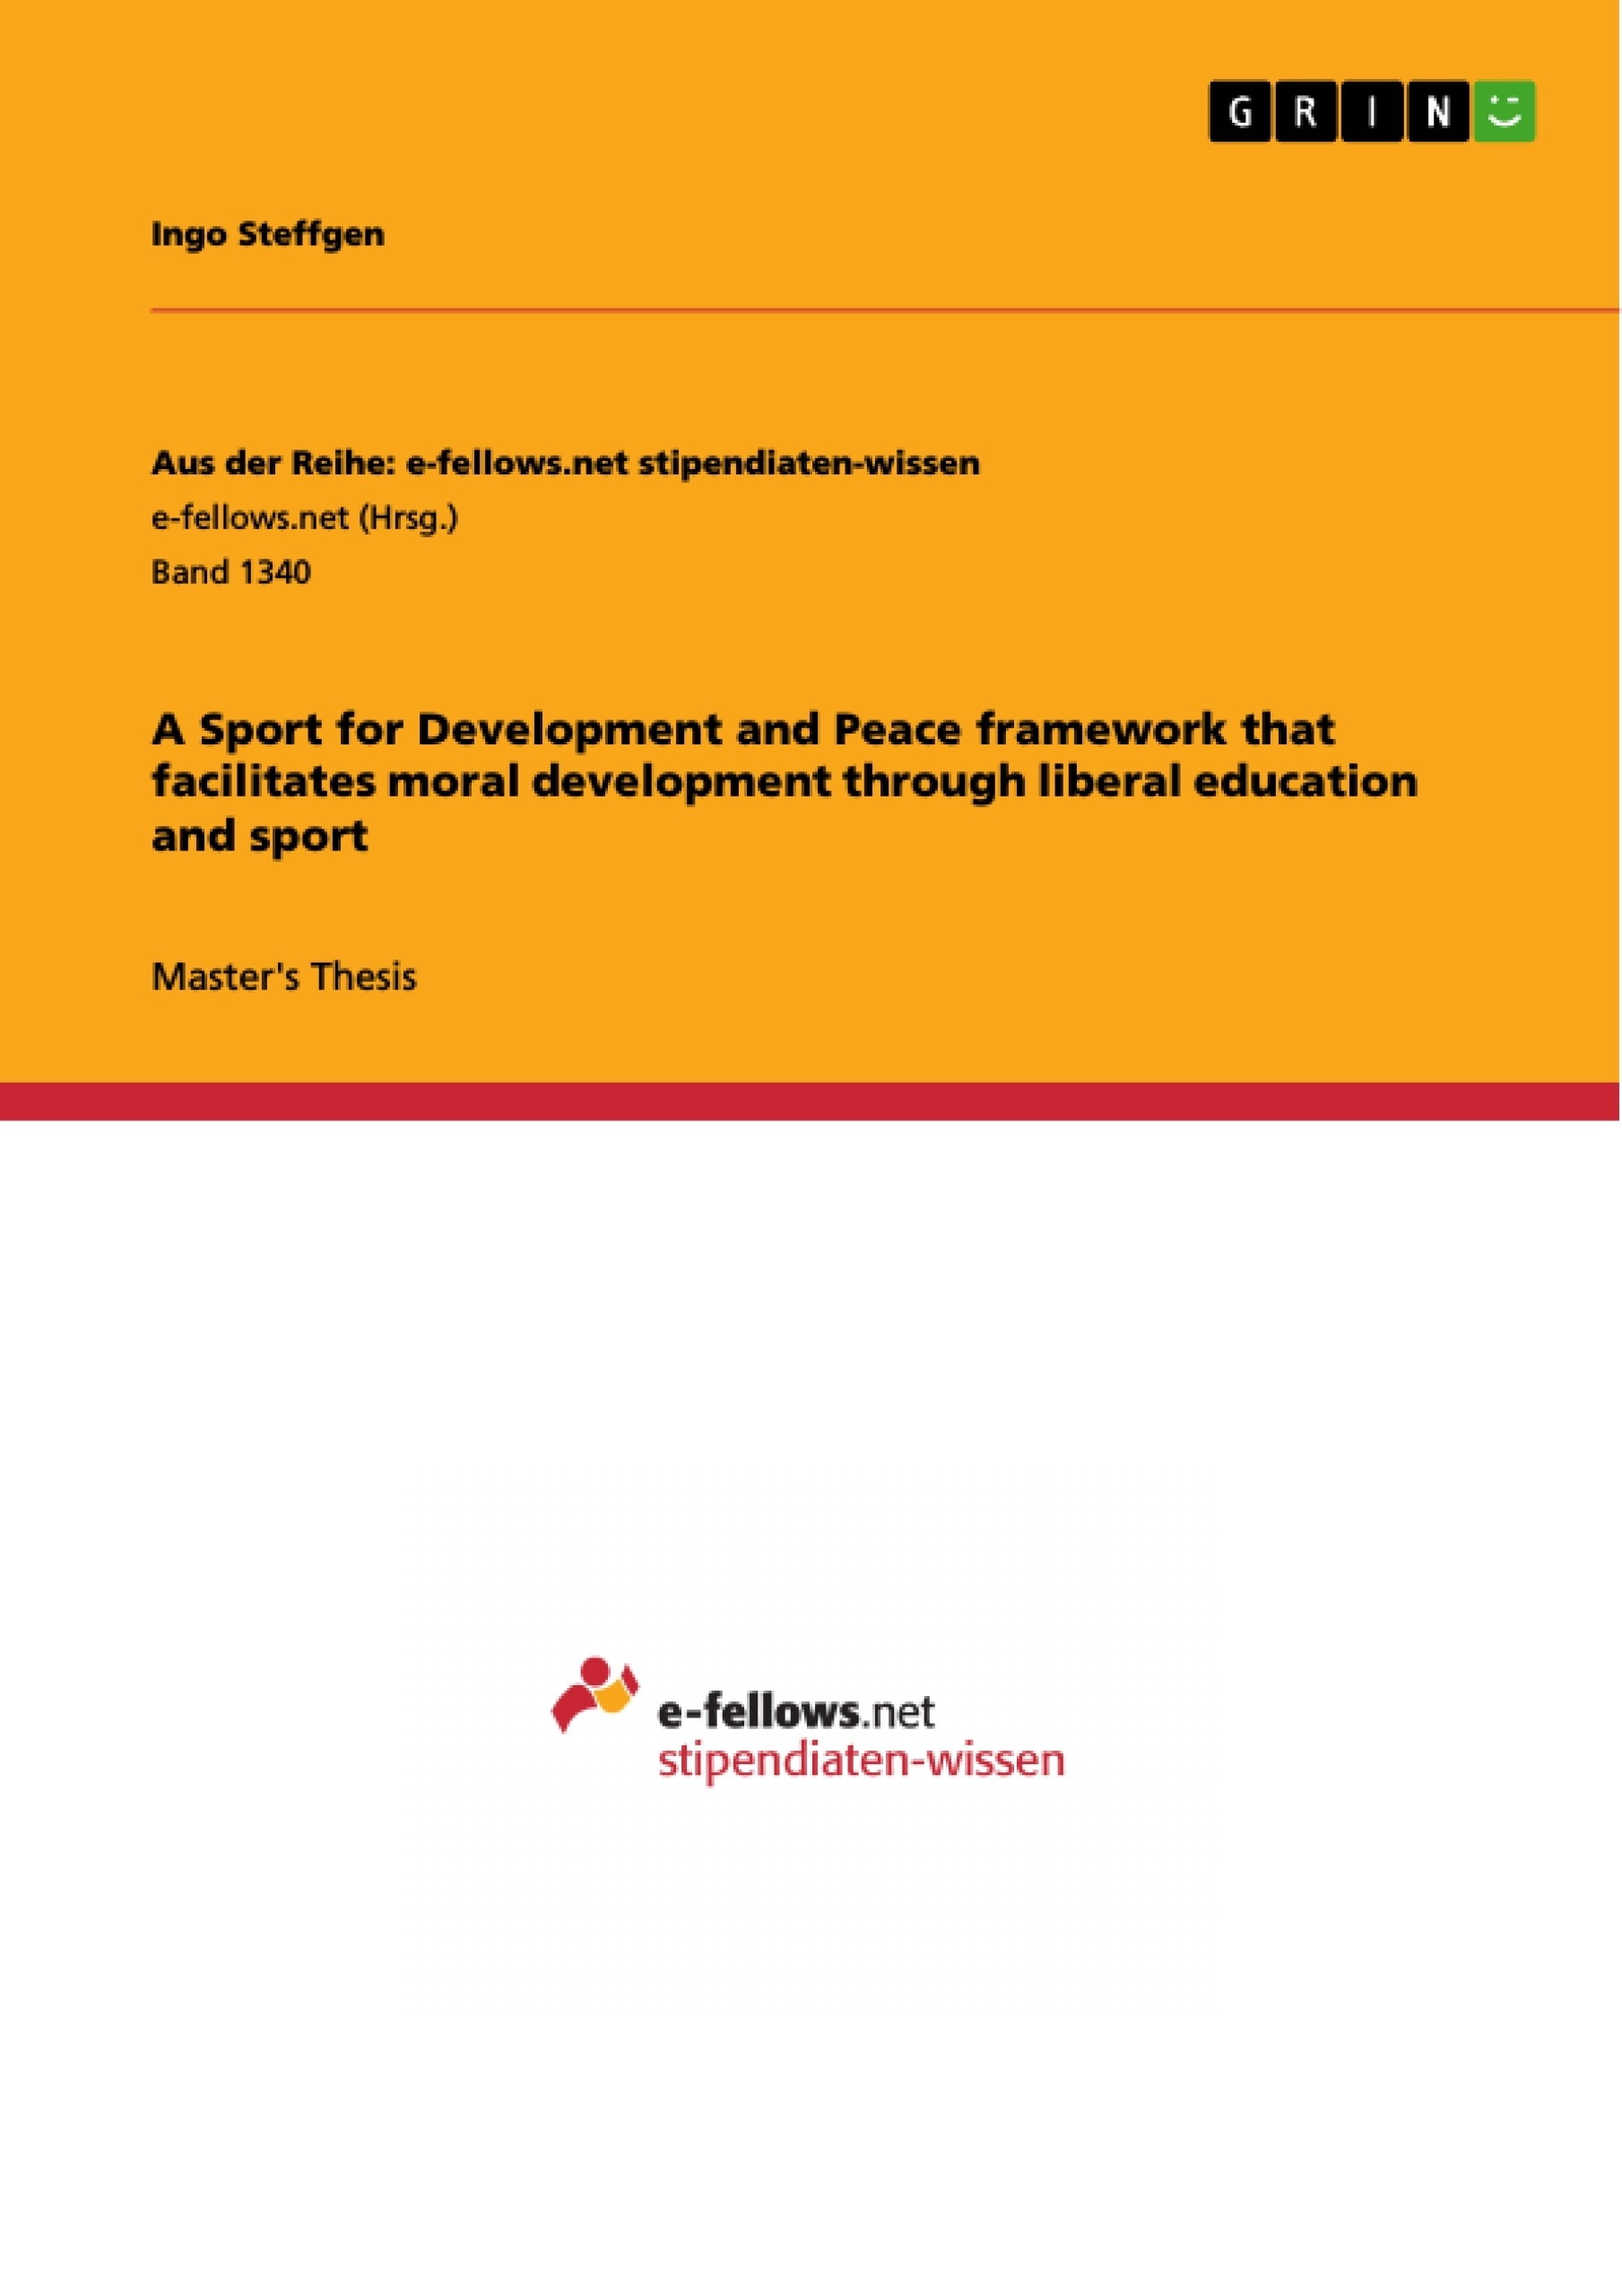 Title: A Sport for Development and Peace framework that facilitates moral development through liberal education and sport